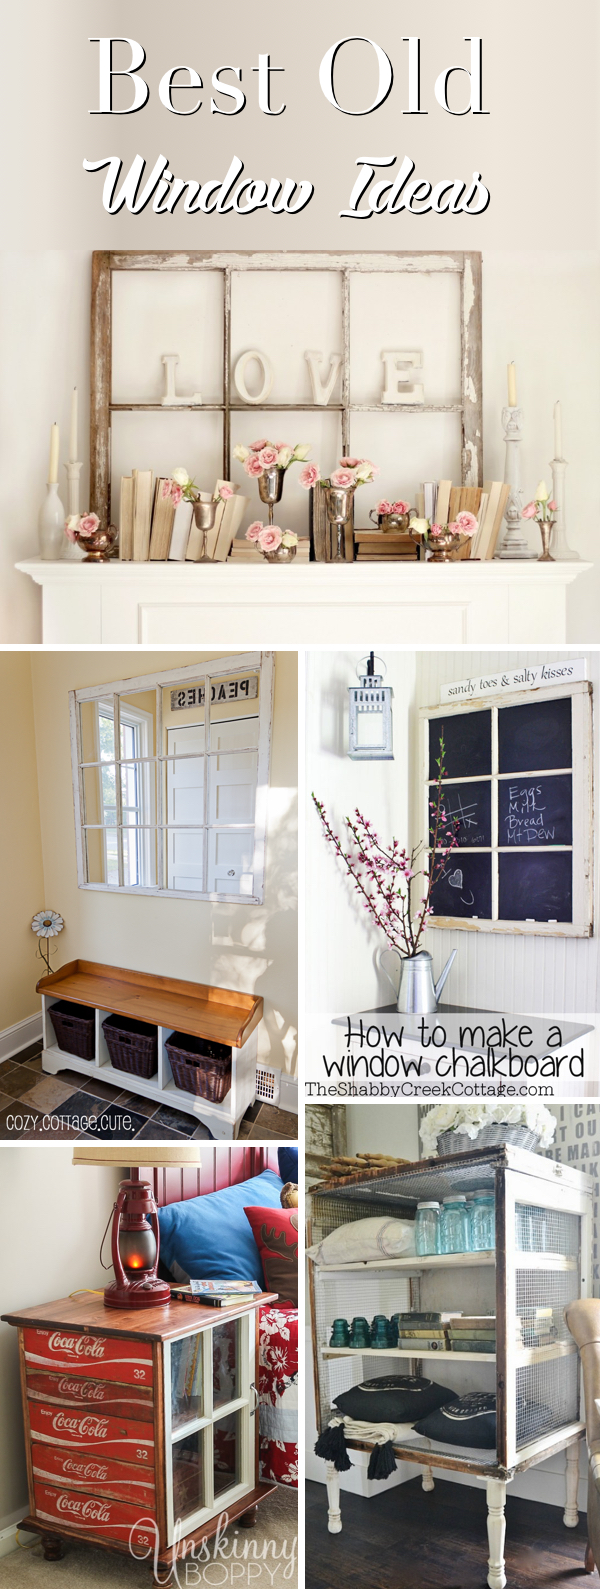 25 Old Window Ideas Transforming Those Frames From Odd to Extraordinary!